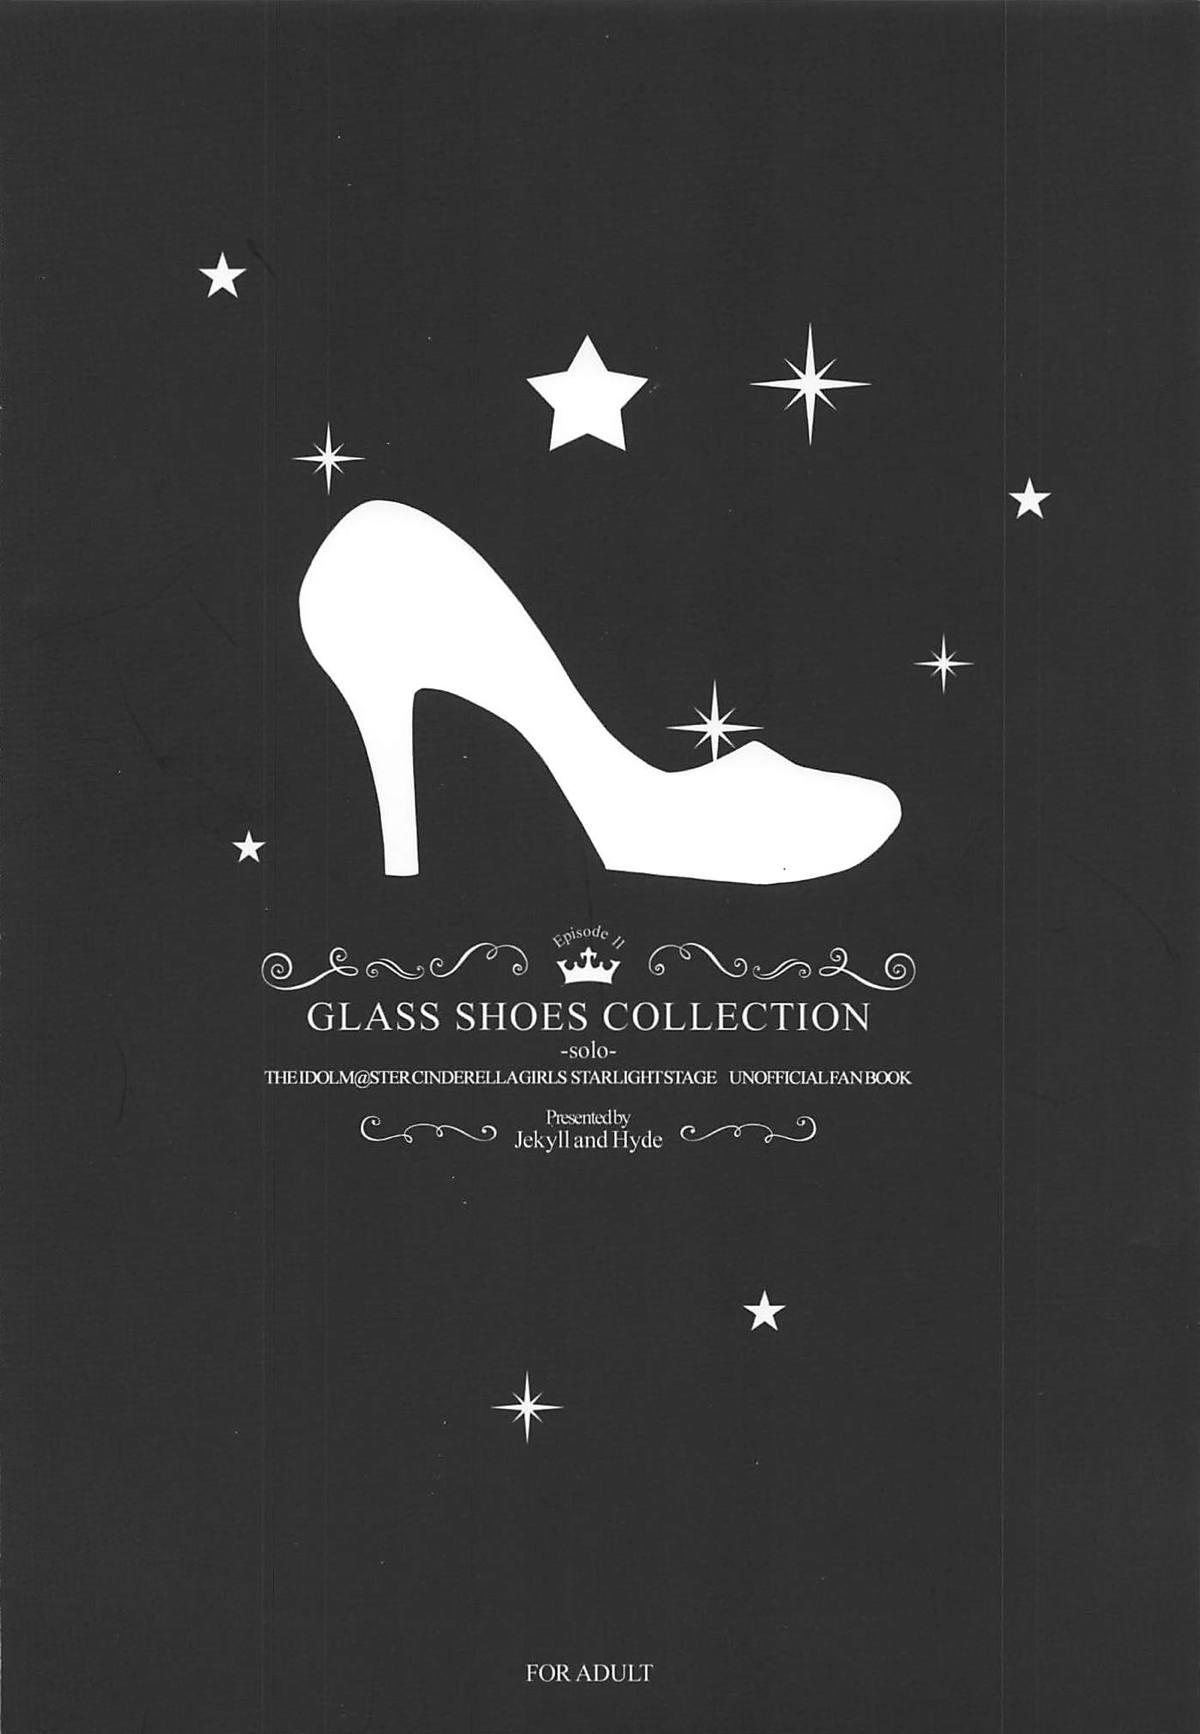 GLASS SHOES COLLECTION 72